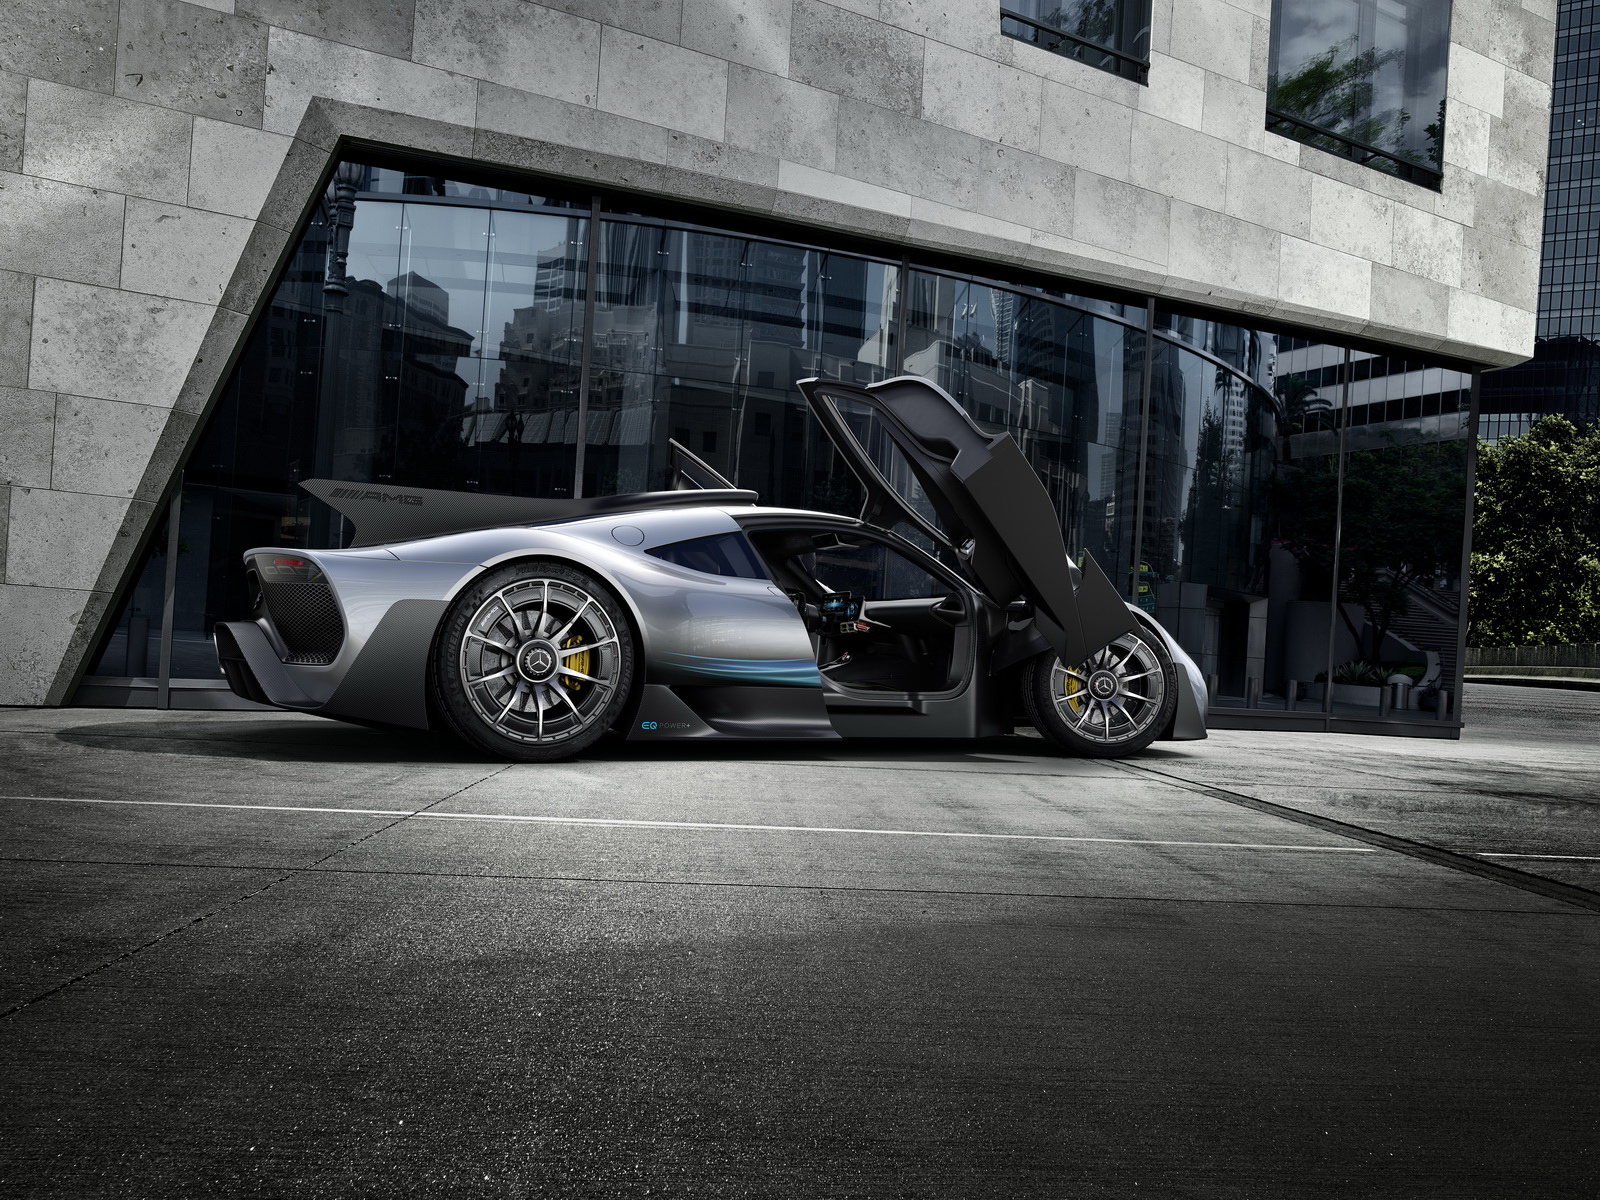 mercedes-amg-project-one-5.jpg